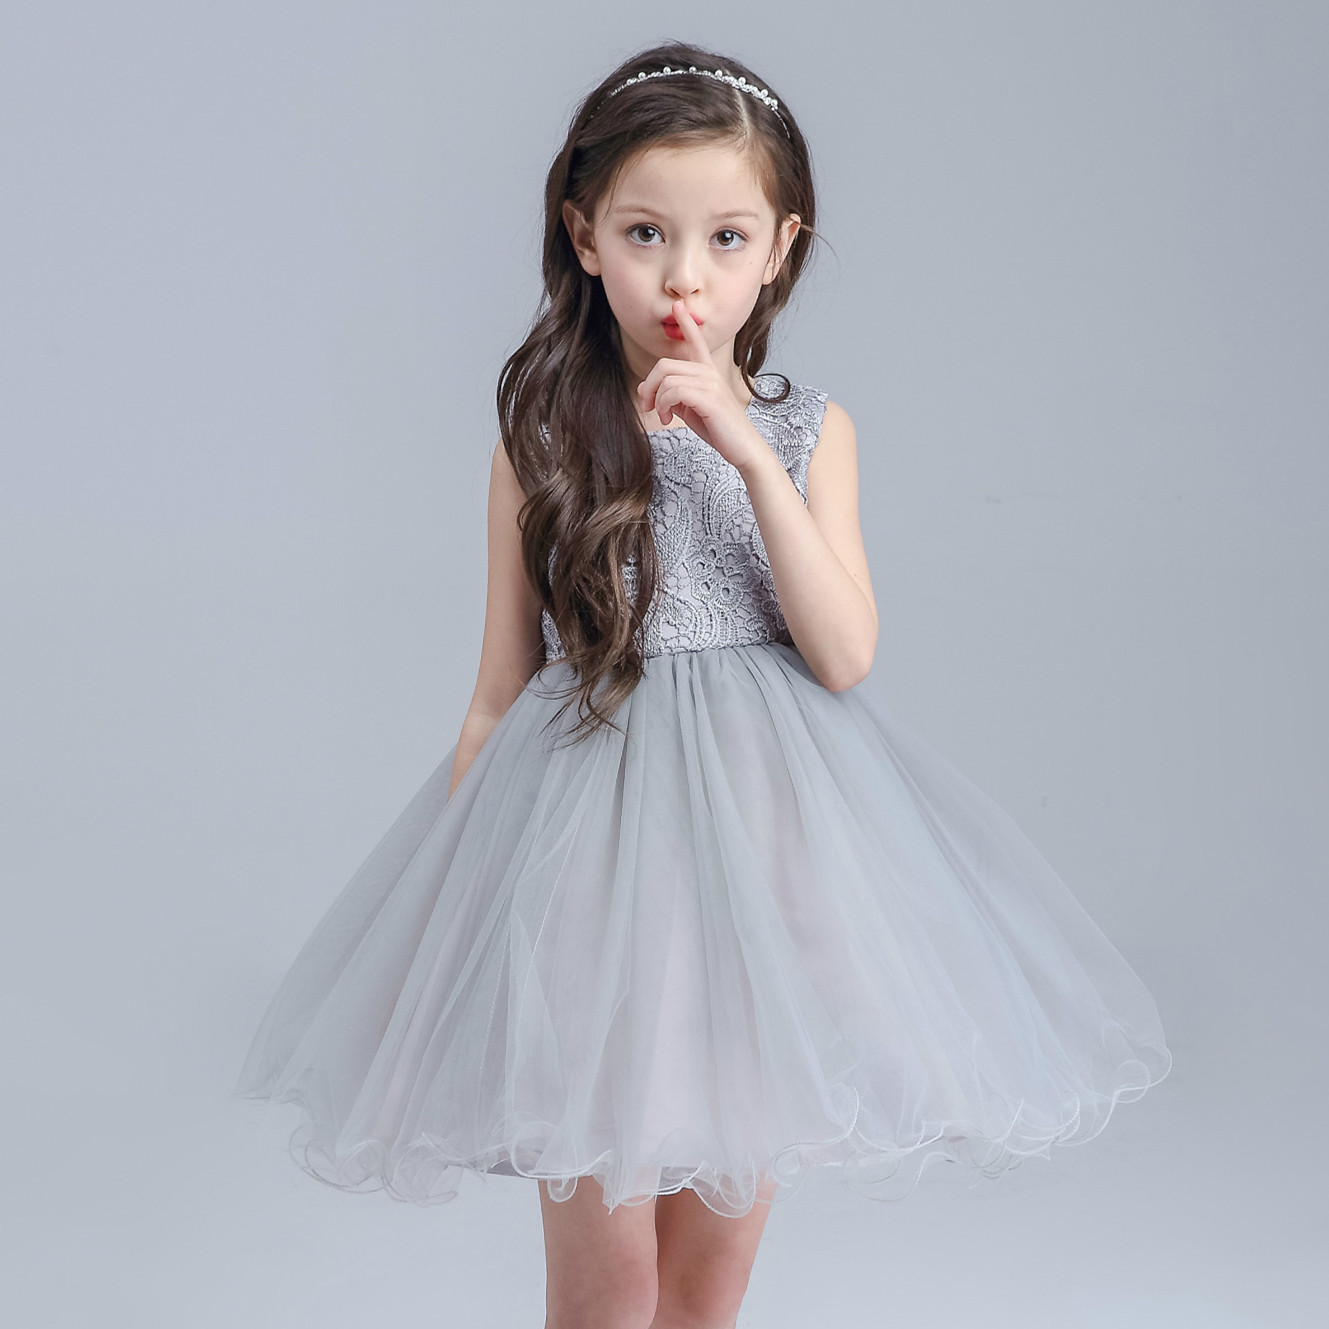 Stunning Toddler Dresses For Weddings Pictures Inspiration - Wedding ...